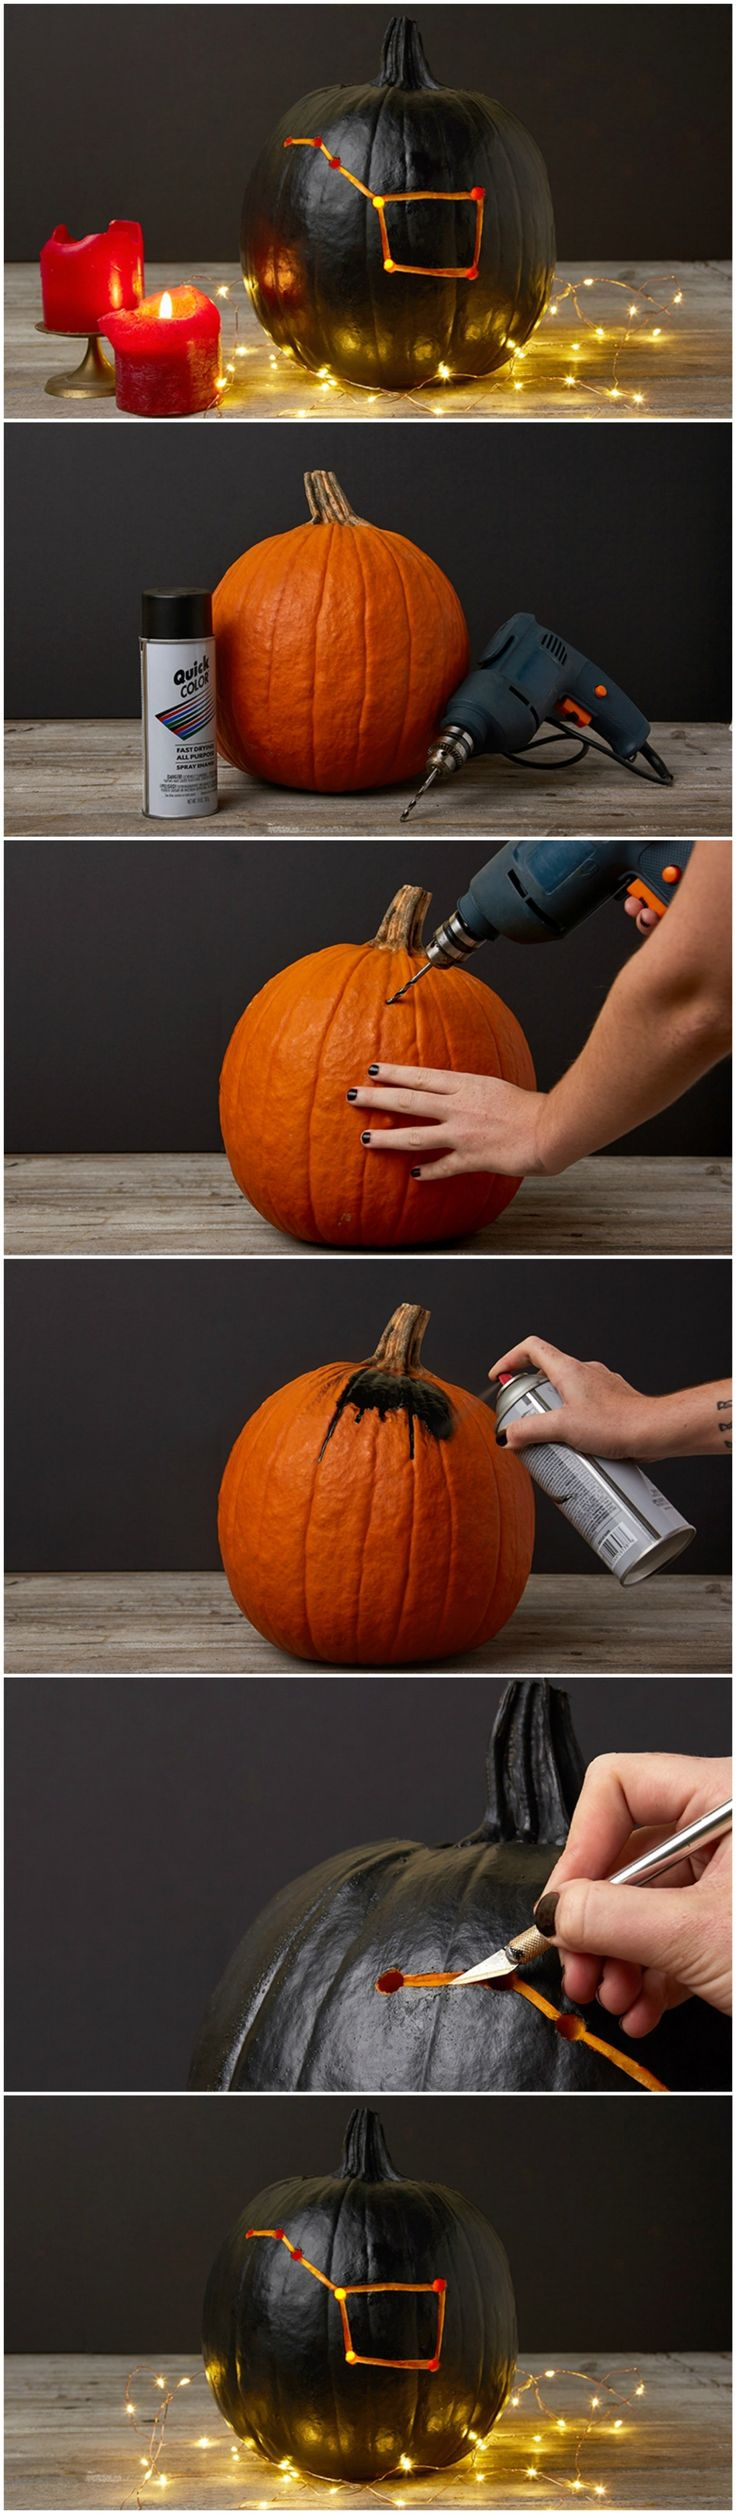 68 best Halloween Party images on Pinterest